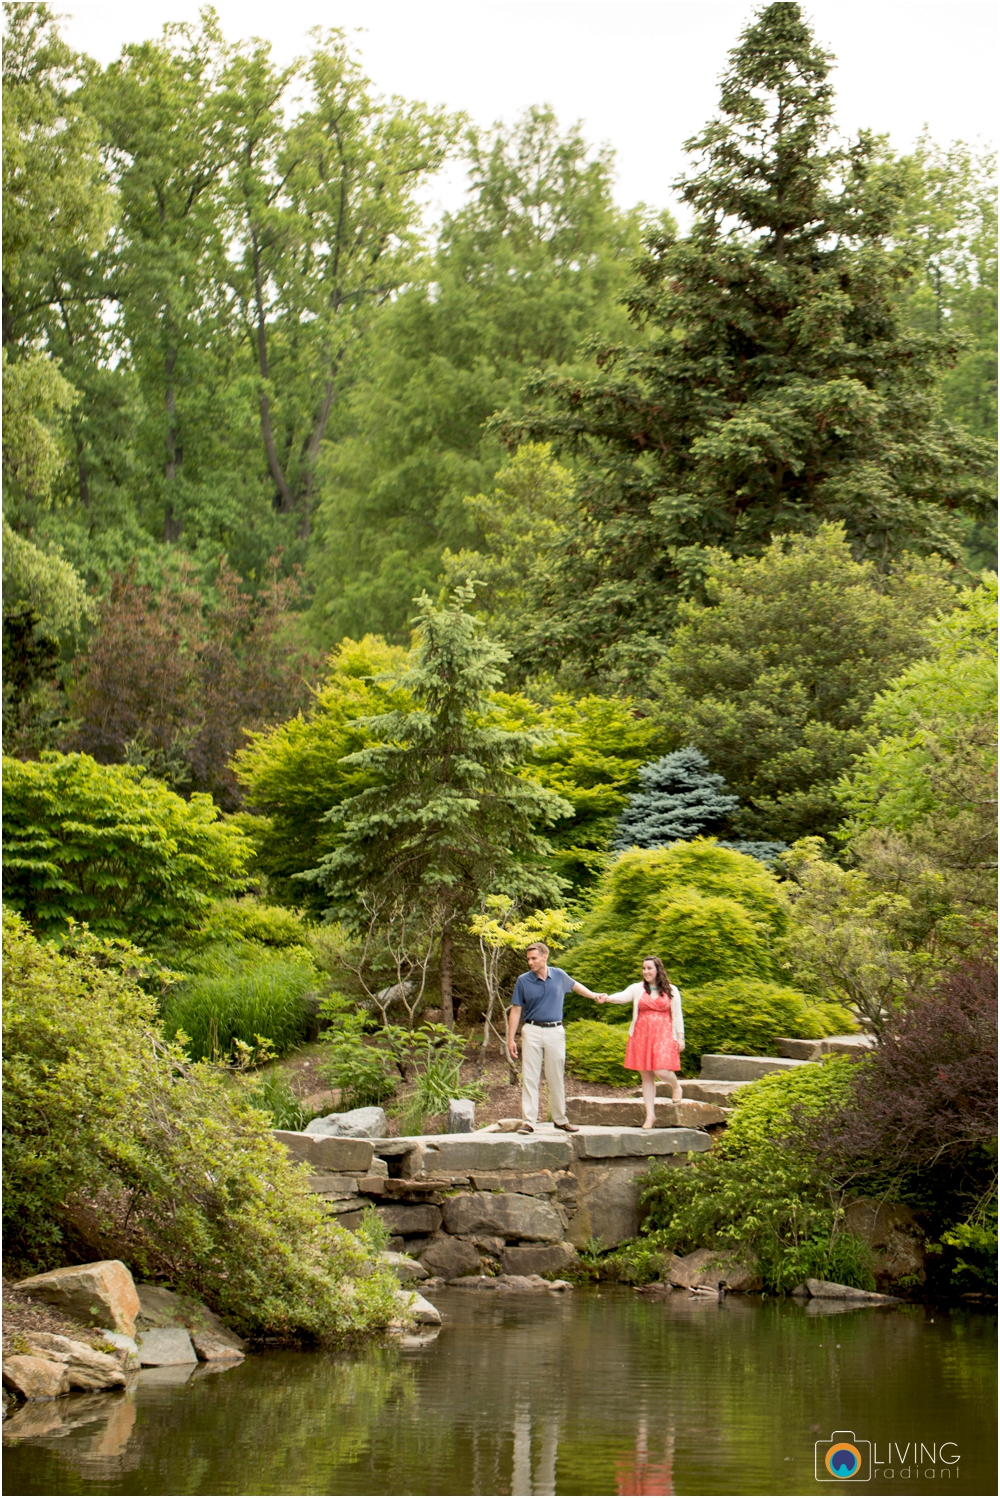 melissa-chris-brookside-gardens-engagement-session-outdoor-gardens-living-radiant-photography-maggie-patrick-nolan_0018.jpg